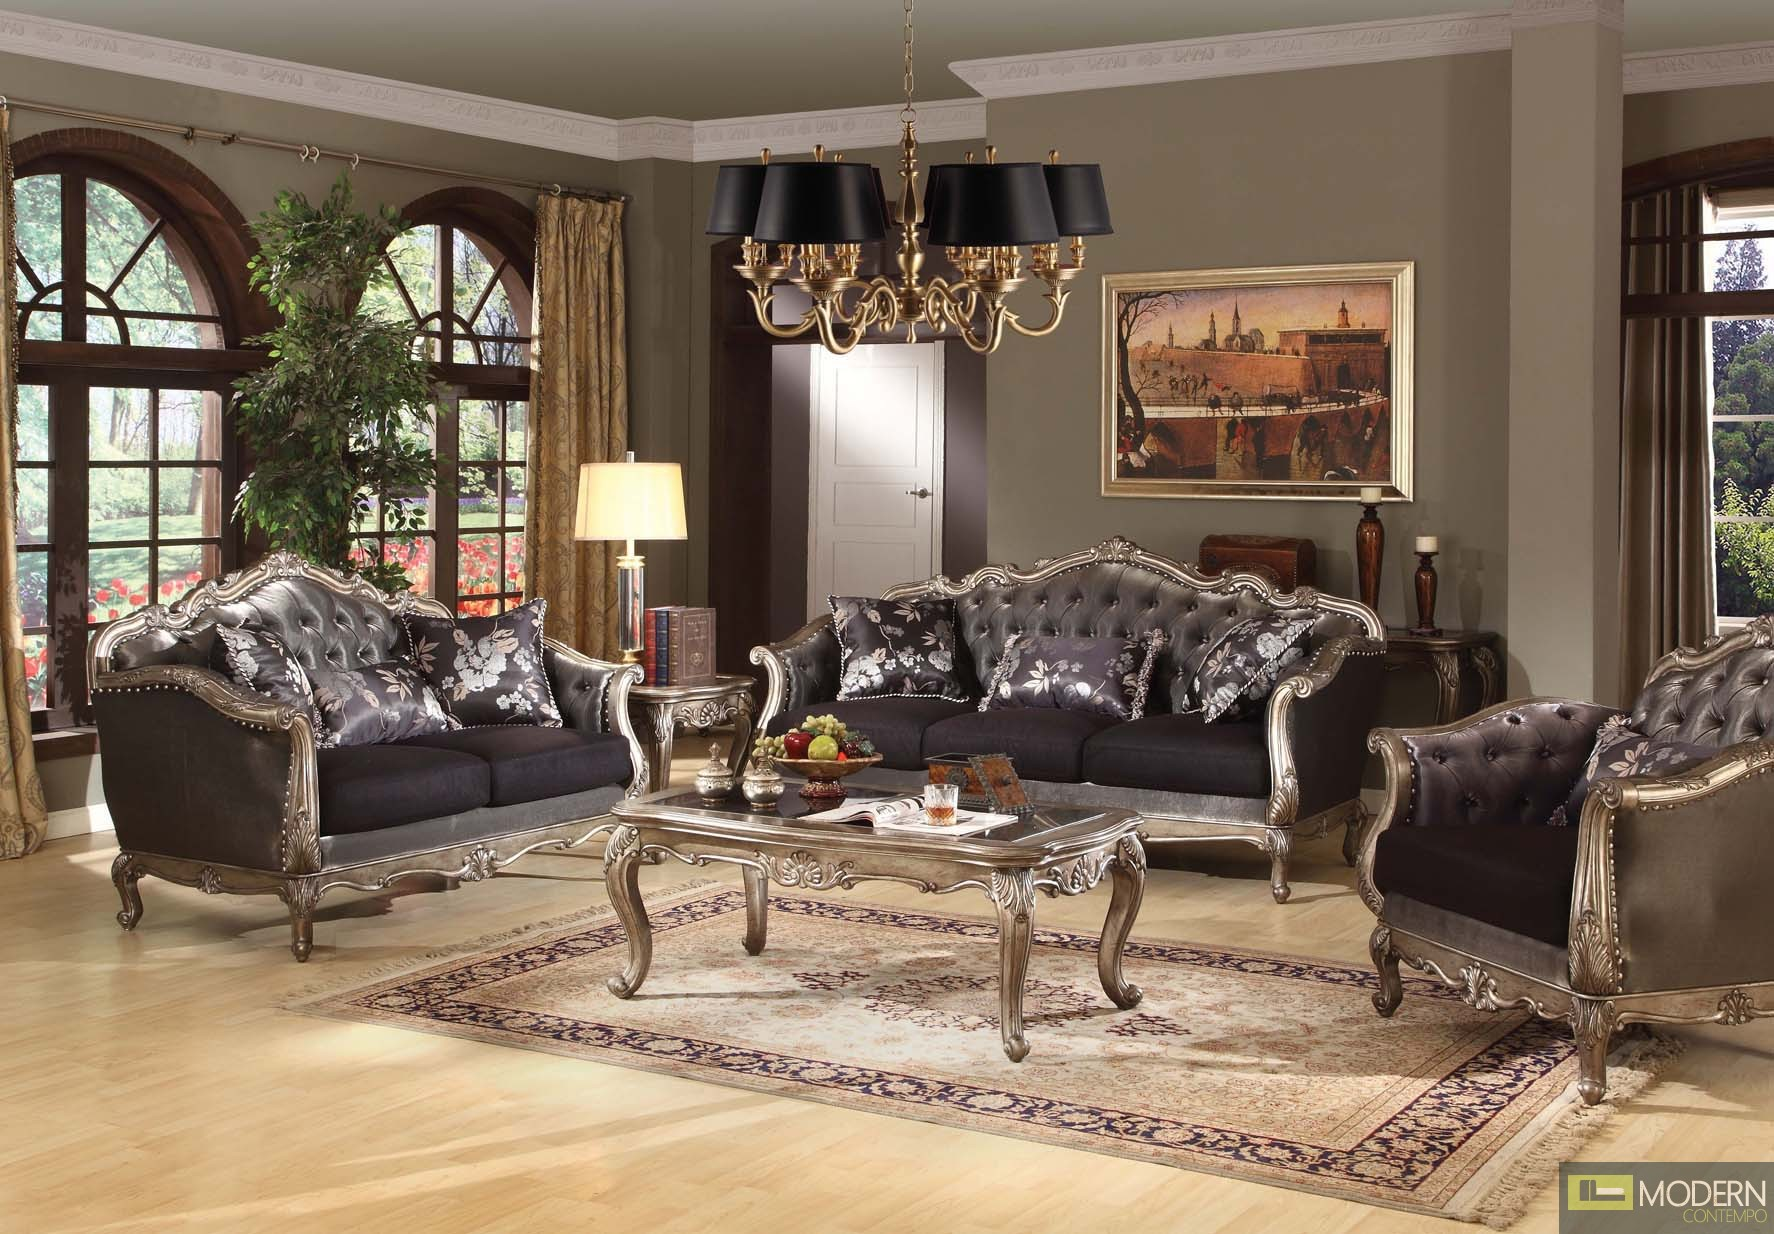 Modern contempo french rococo luxury sofa traditional living room set mcac51540 - Living room furniture traditional ...